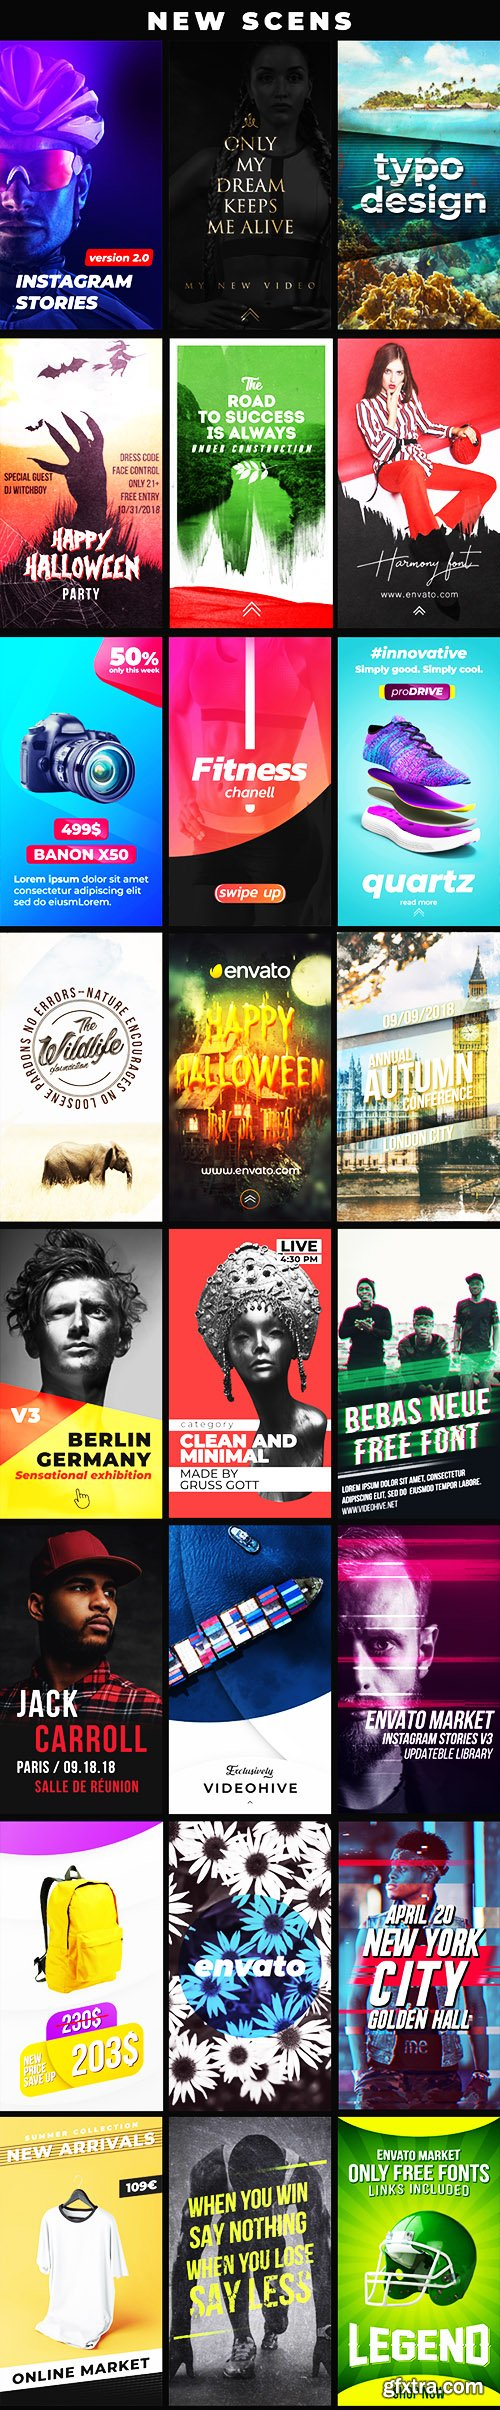 Videohive Instagram Stories V4 21895564 (With 3 October 18 Update))